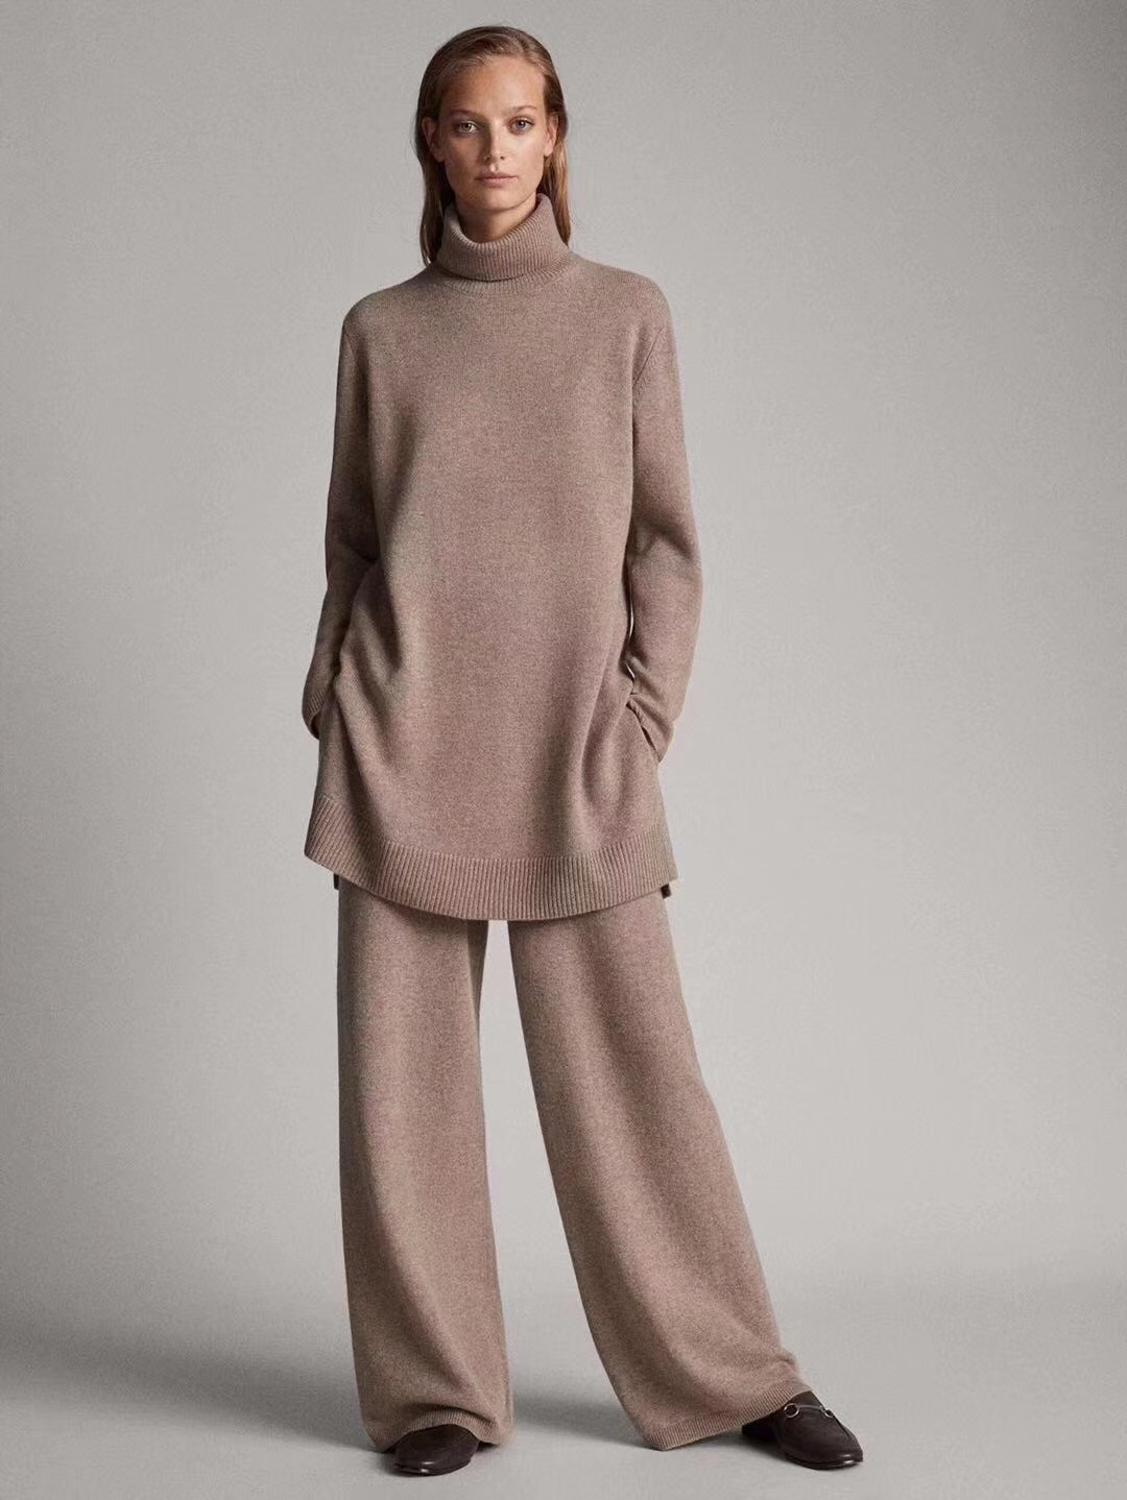 Luxury Two Pieces 45% Cashmere + 30% Wool Suits Female High Collar Warm Mink Cashmere Knit Tops +  Wide Leg Wool Pant Sets F688